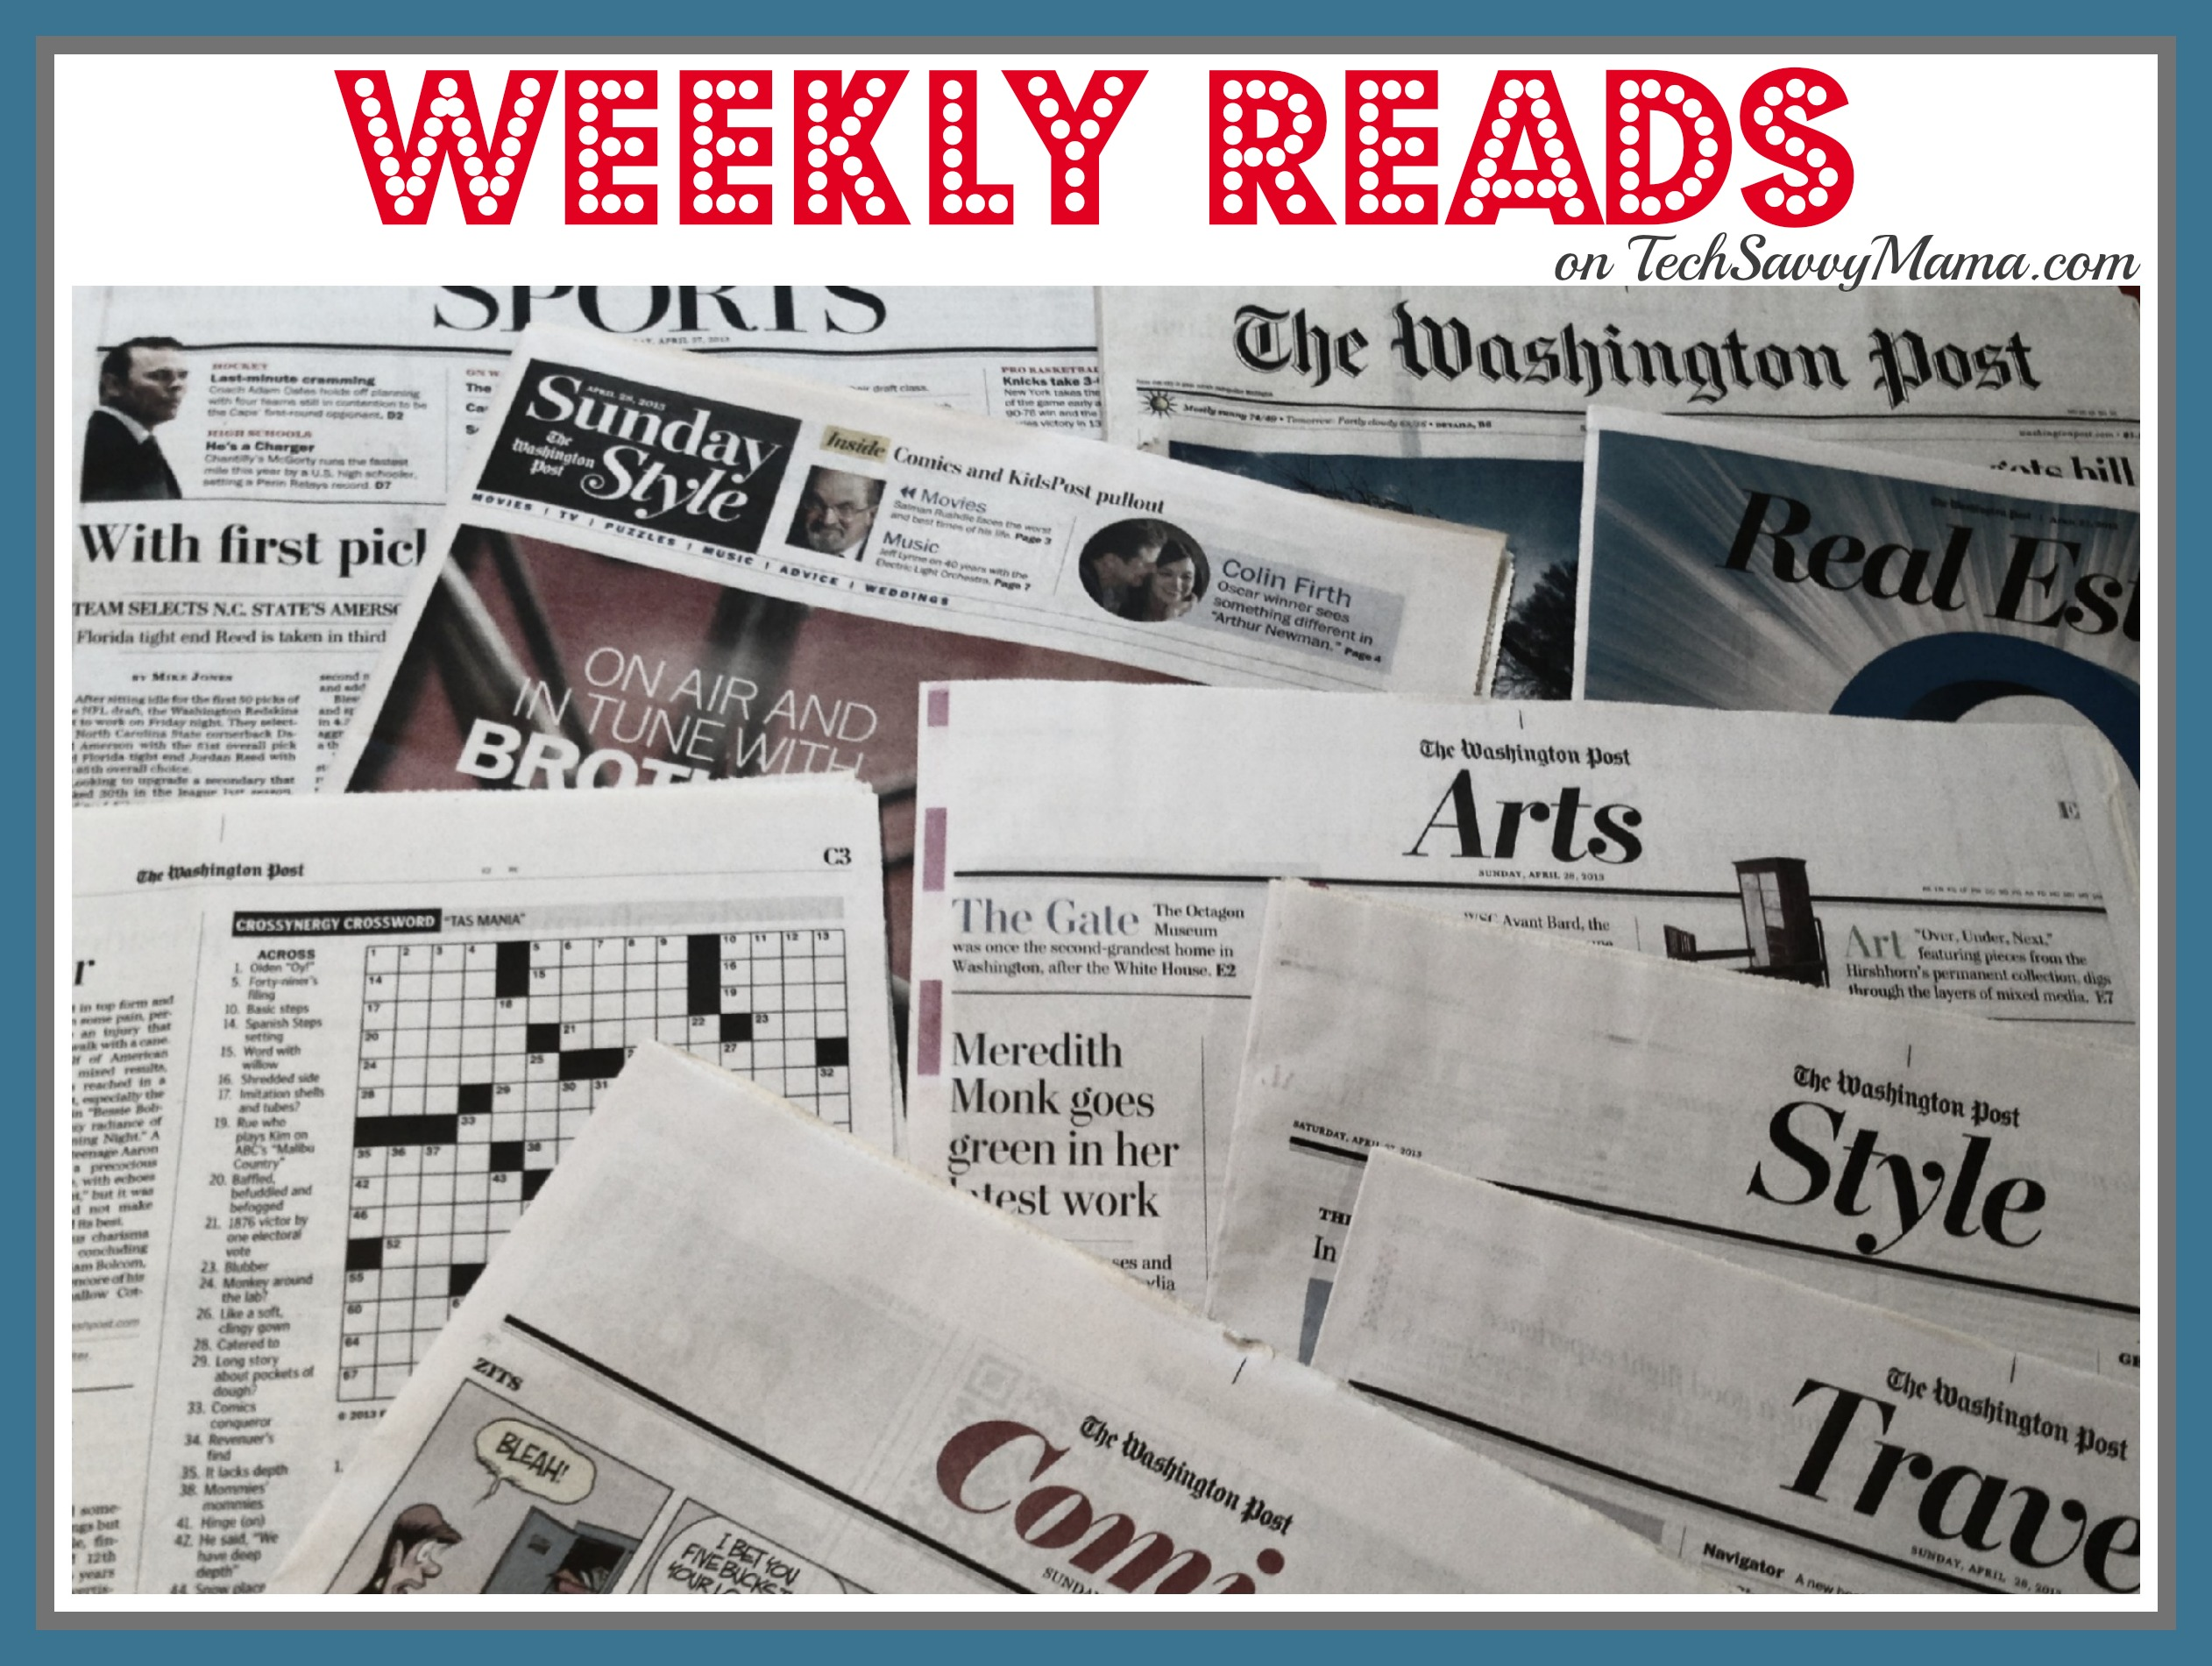 Weekly Reads 9.8.13